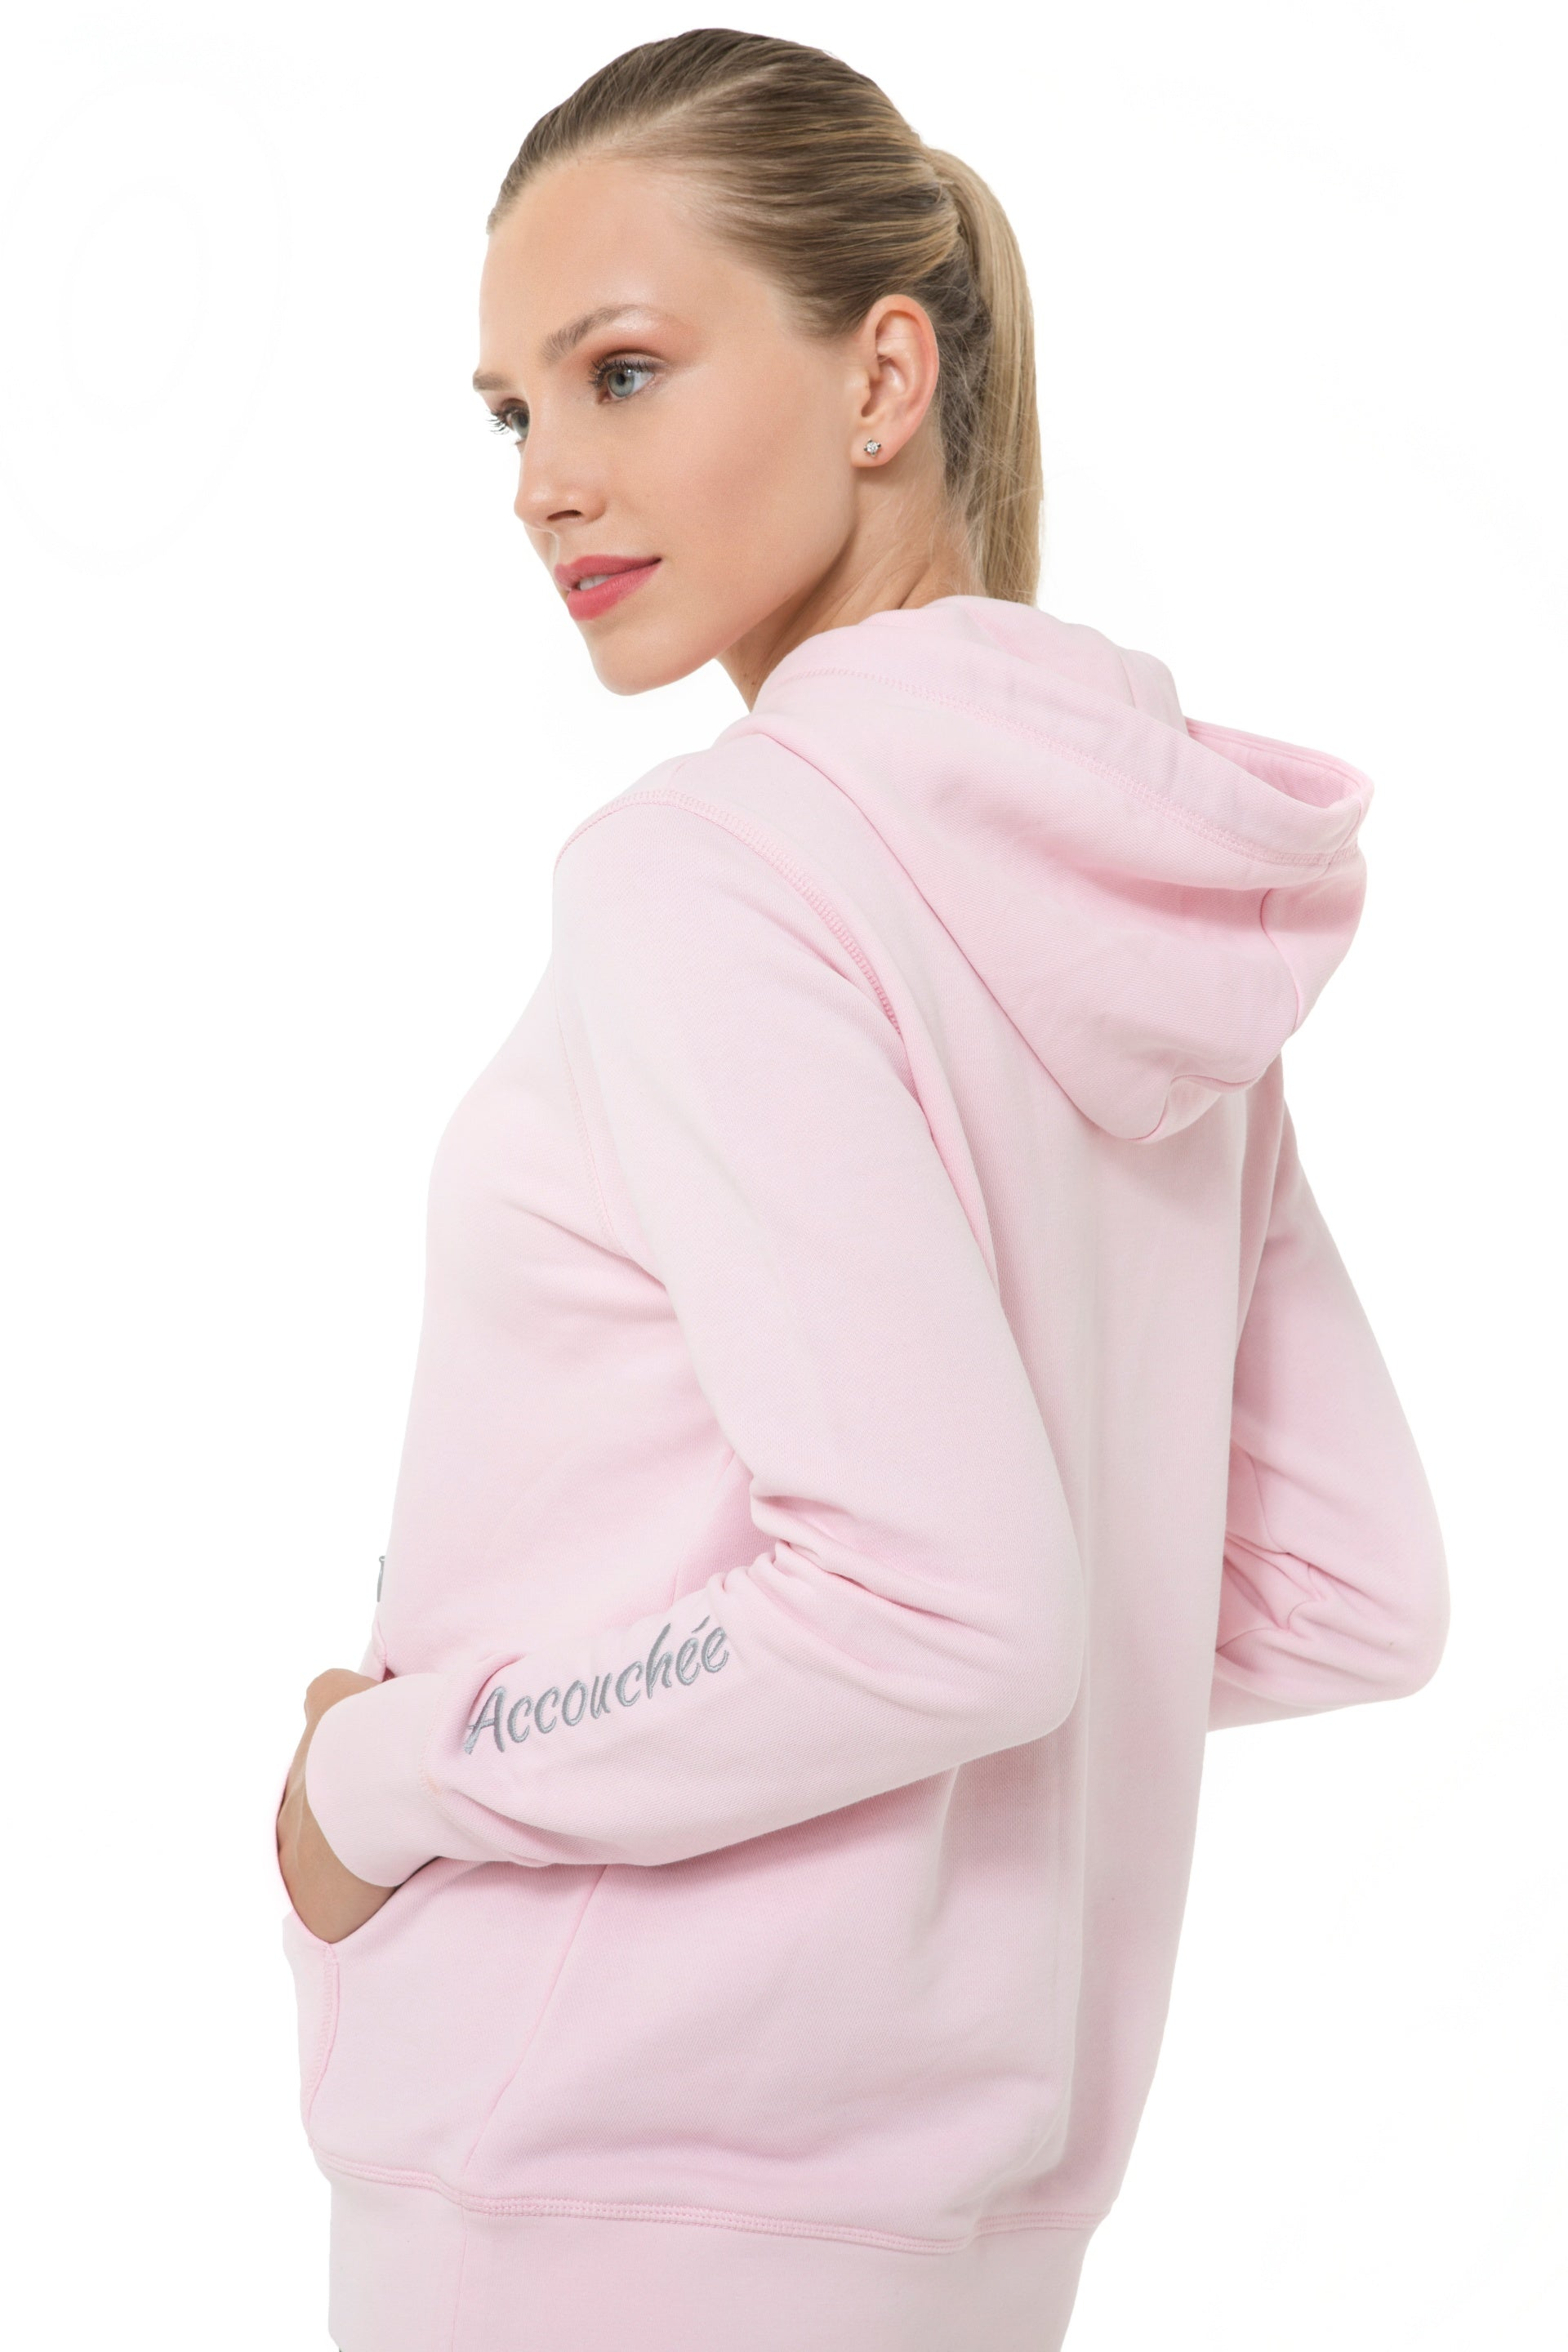 Accouchee Iconic Pink Sweatshirt